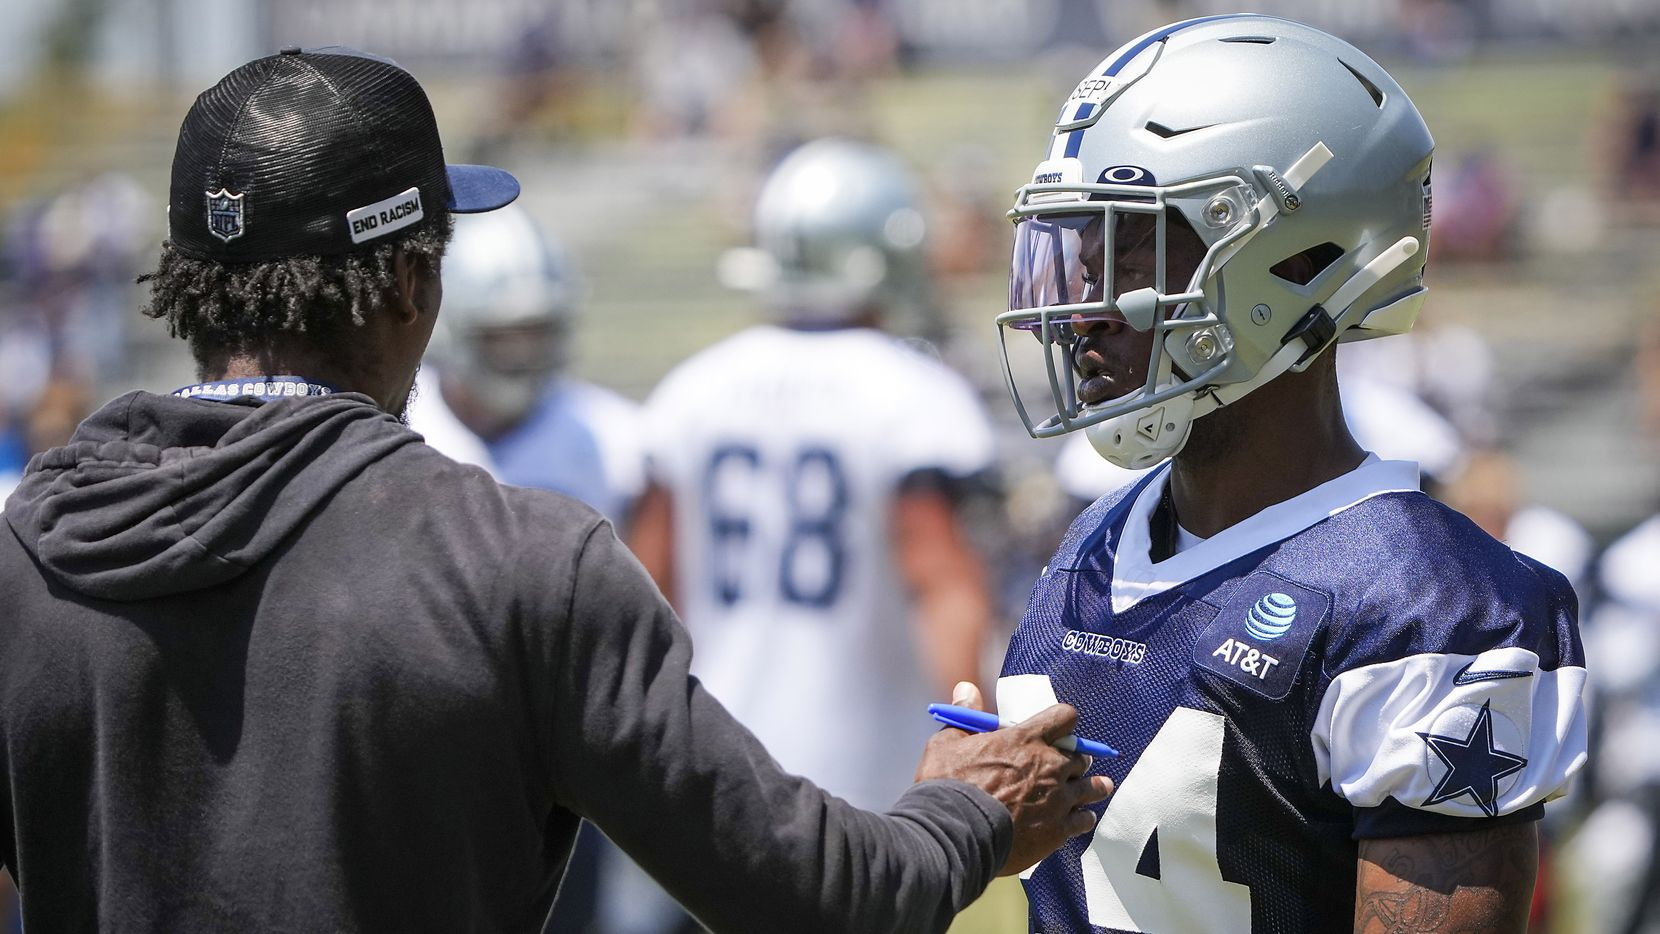 Dallas Cowboys cornerback Kelvin Joseph (24) works with defensive backs coach Al Harris during a practice at training camp on Tuesday, July 27, 2021, in Oxnard, Calif.